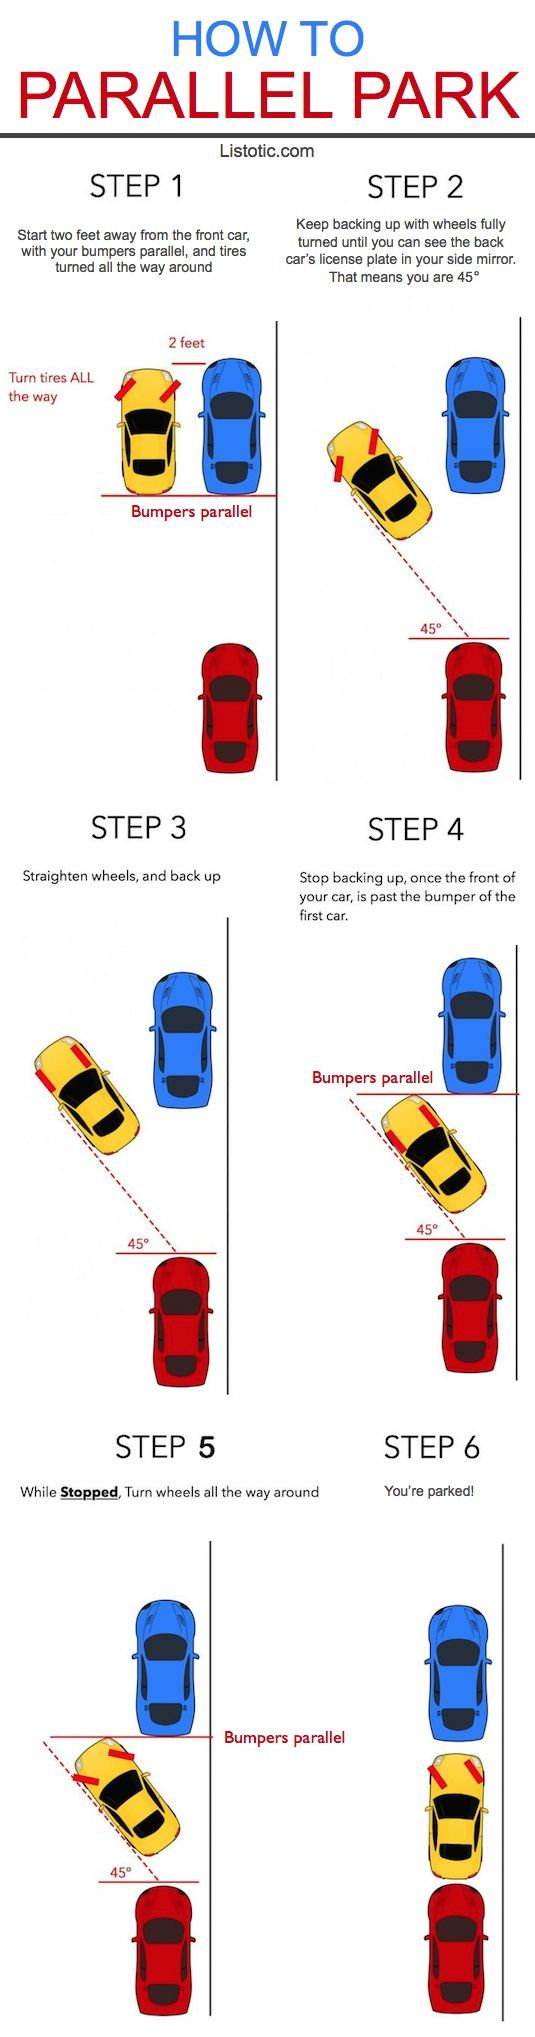 parallel parking infographic